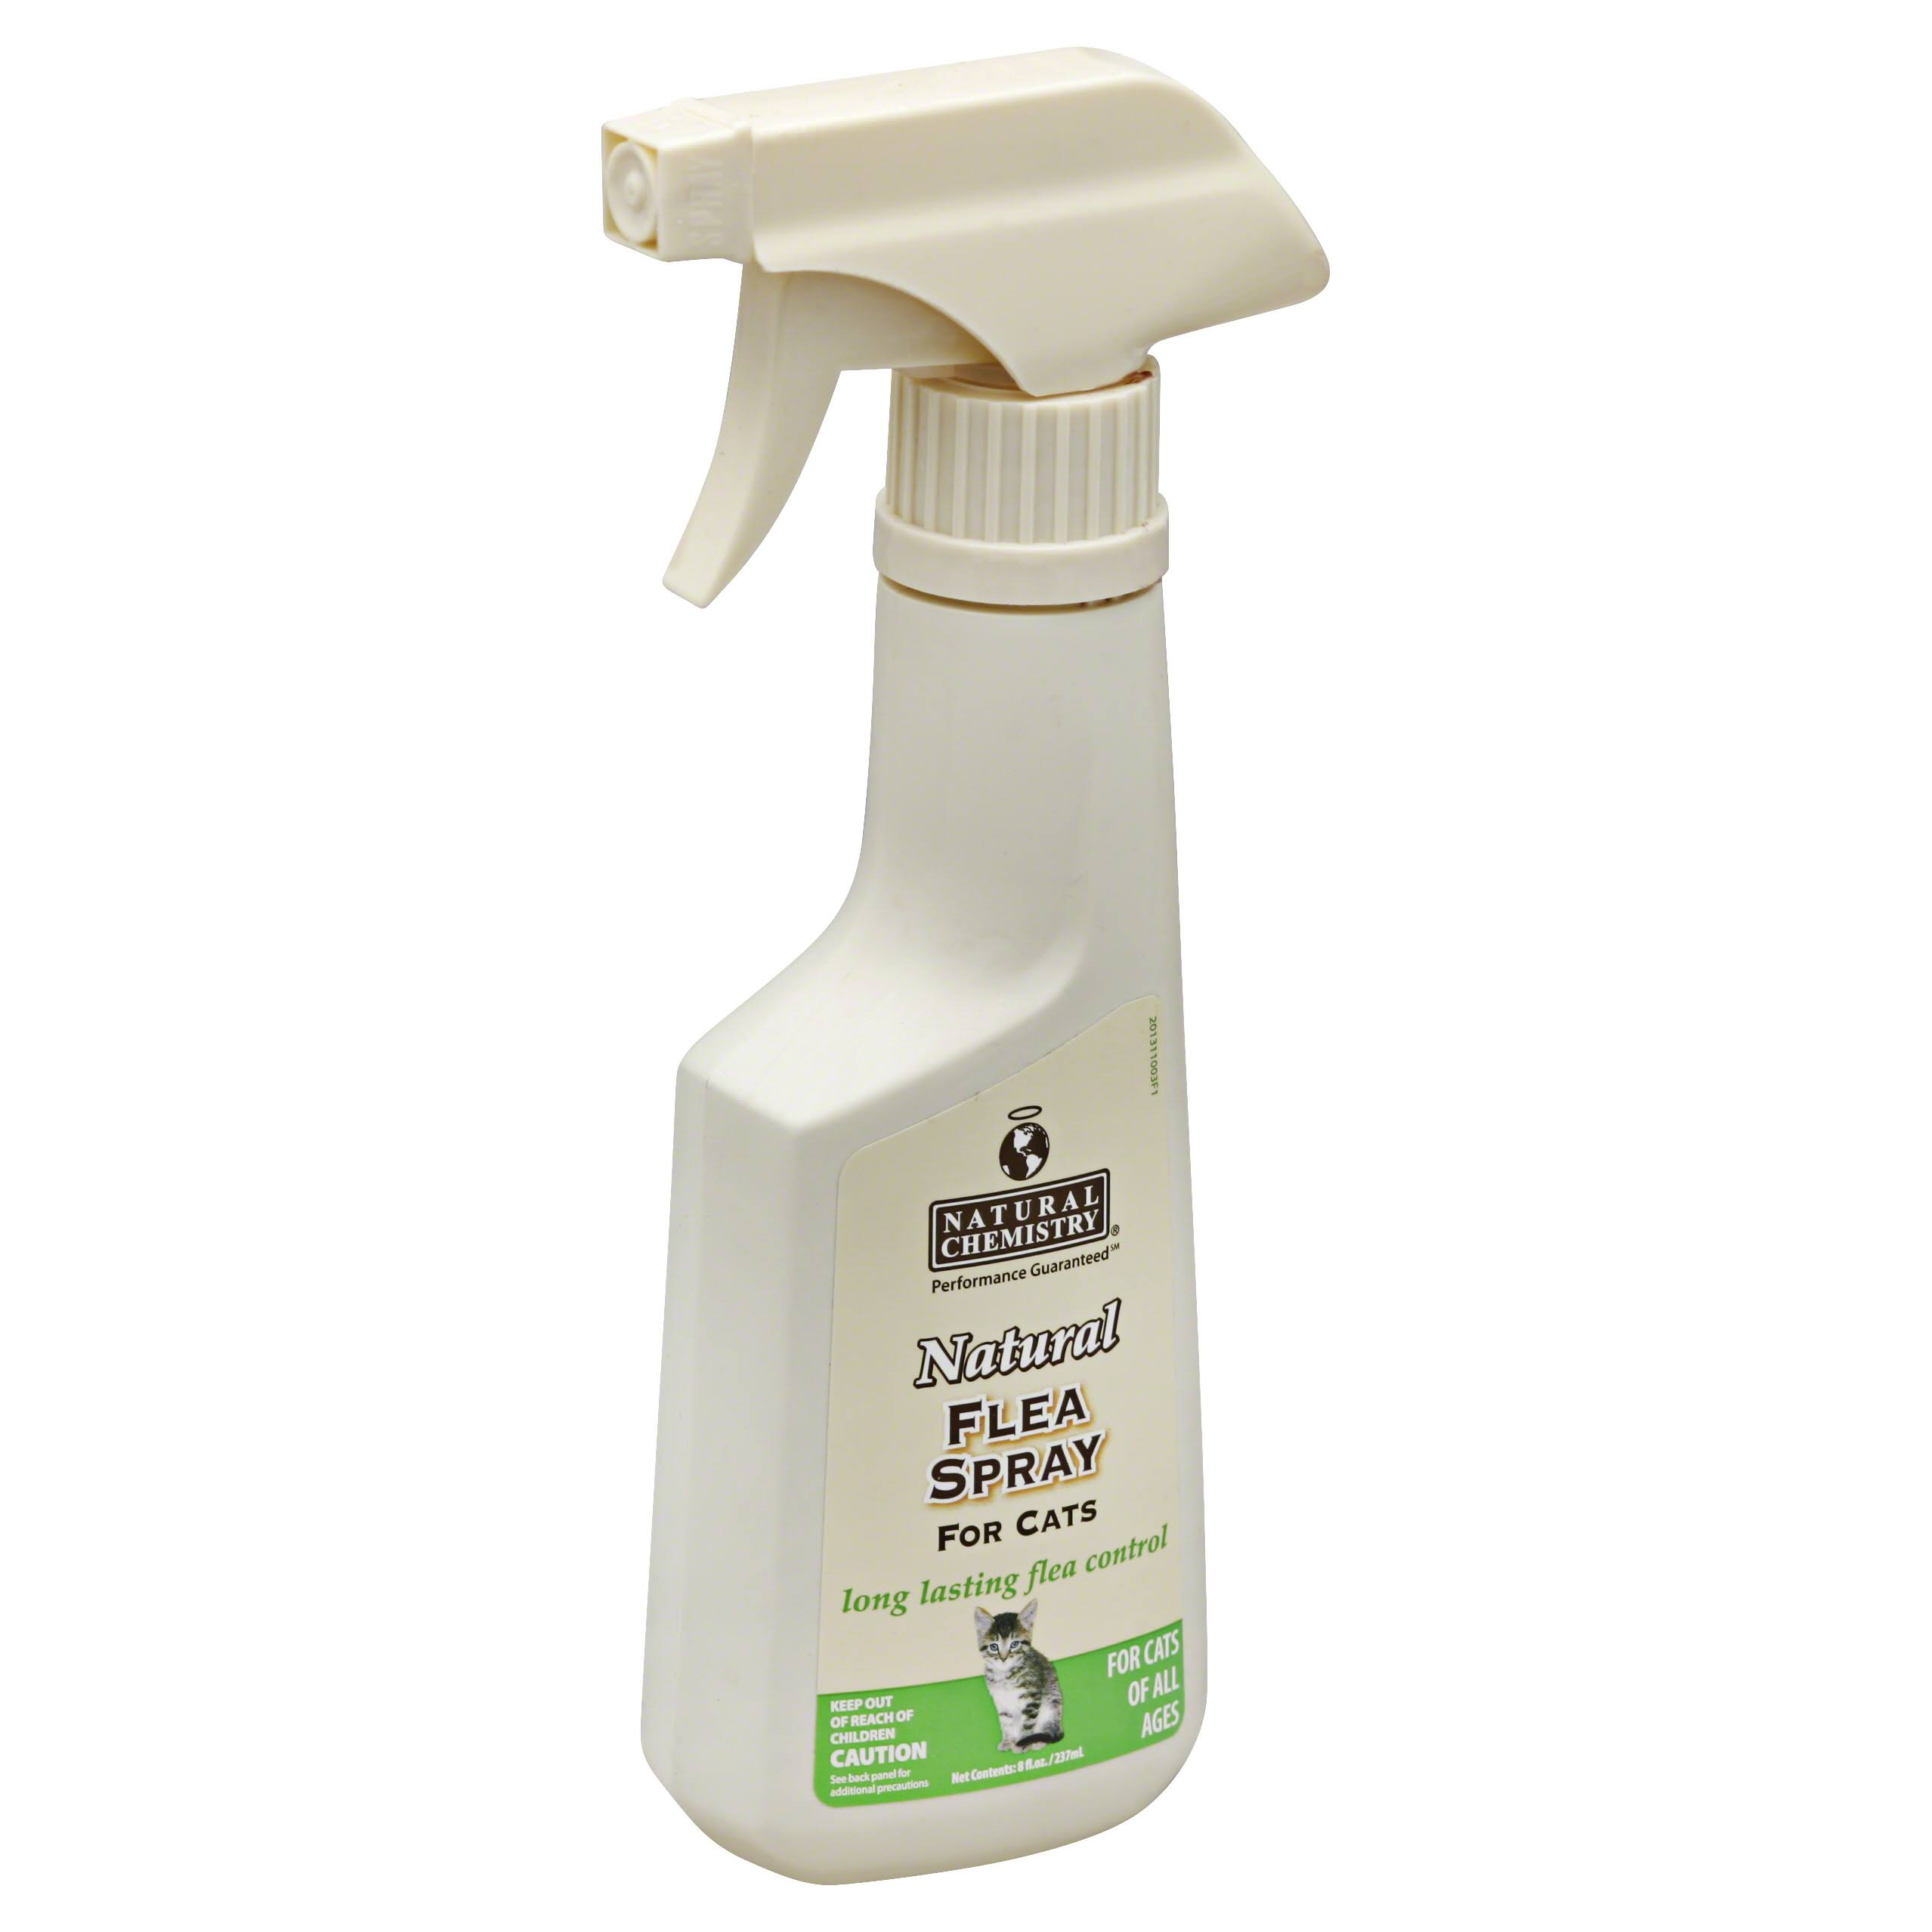 Natural Chemistry Natural Flea Spray